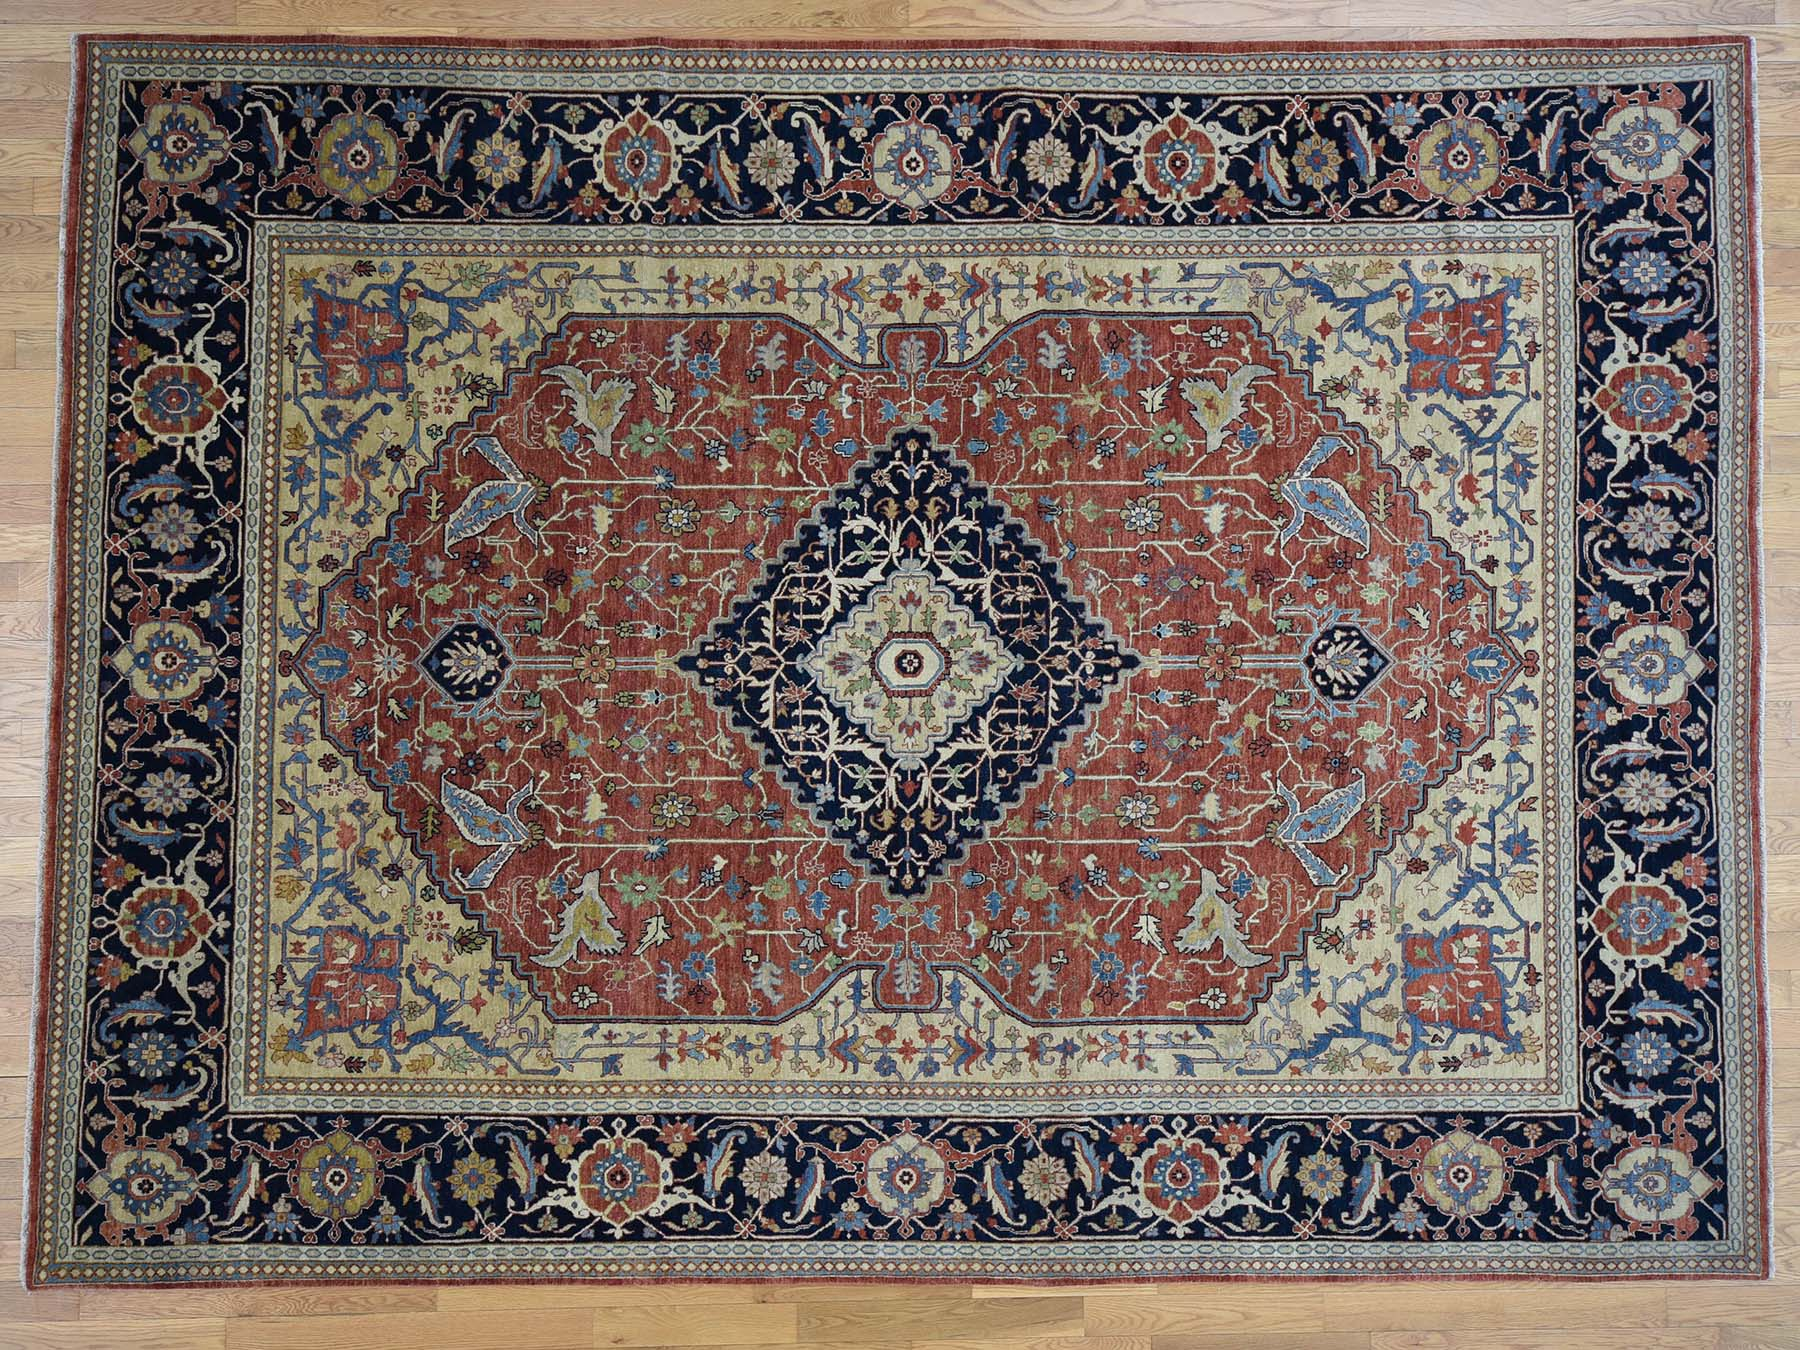 living class rugs rug gold room clearance outdoor brown ideas flooring trend top x area hom goods galleries with depot stylish square alluring impressive home remarkable